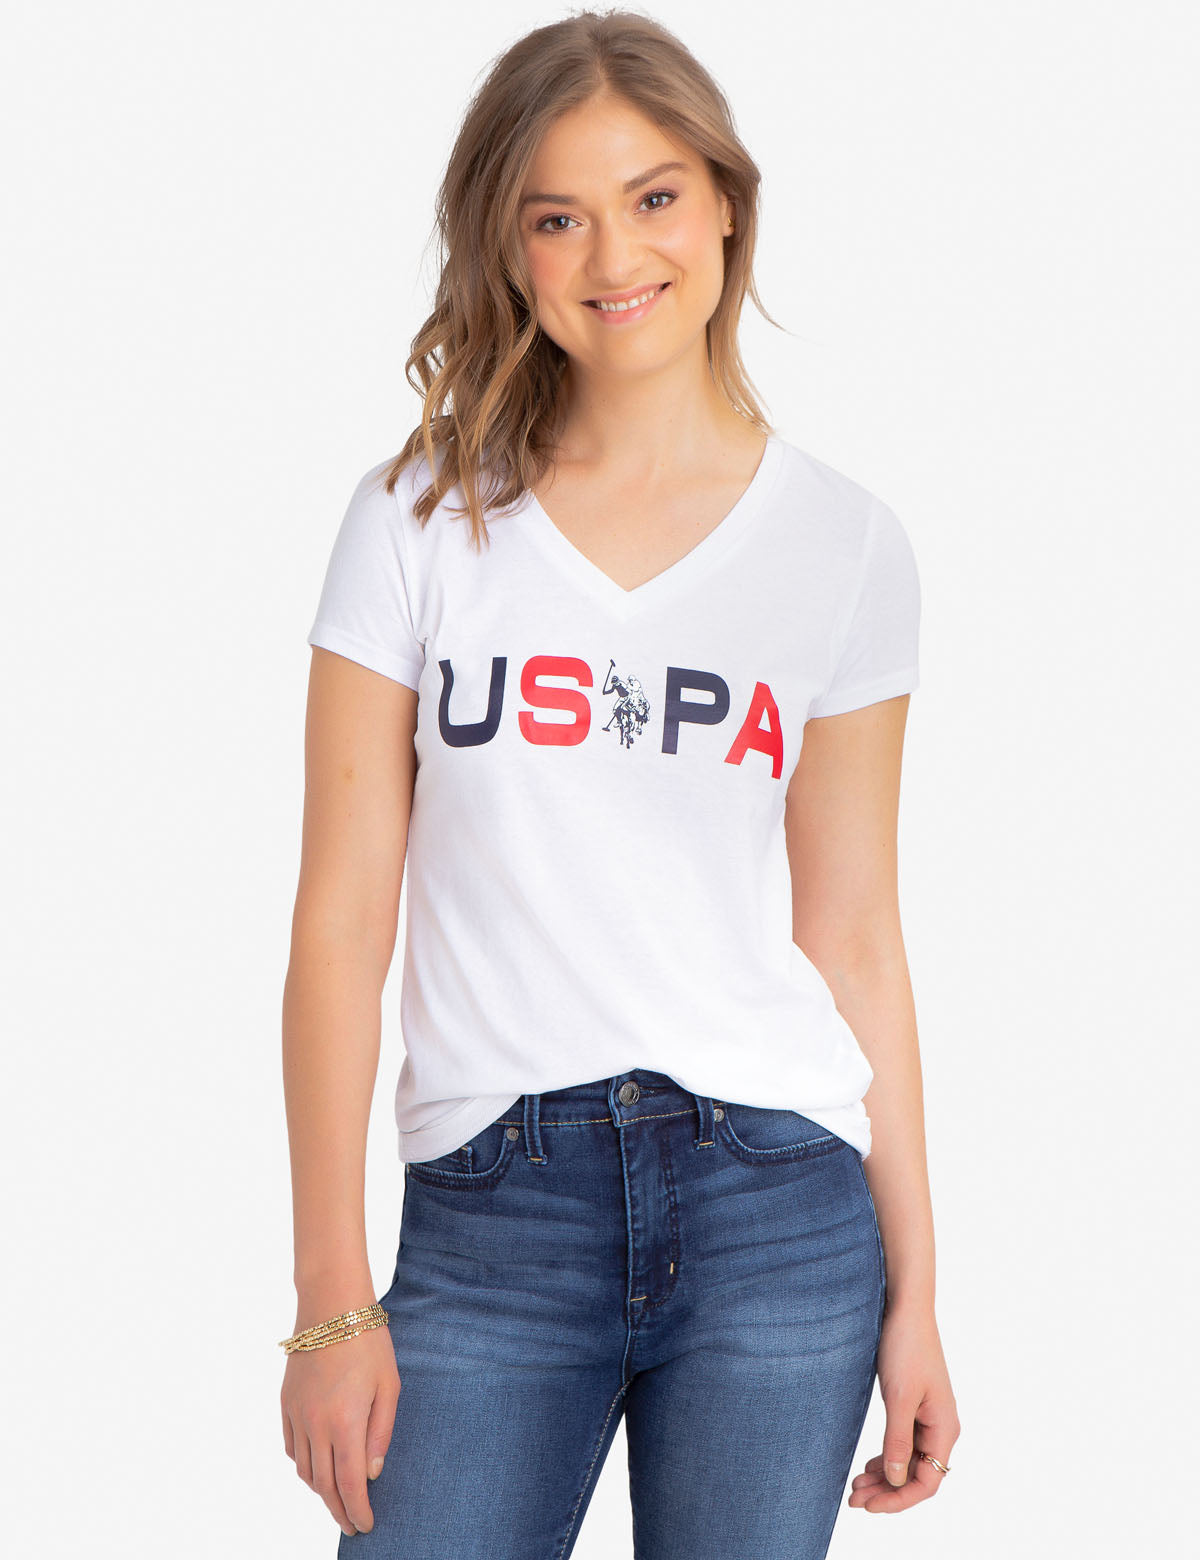 USPA V-NECK T-SHIRT